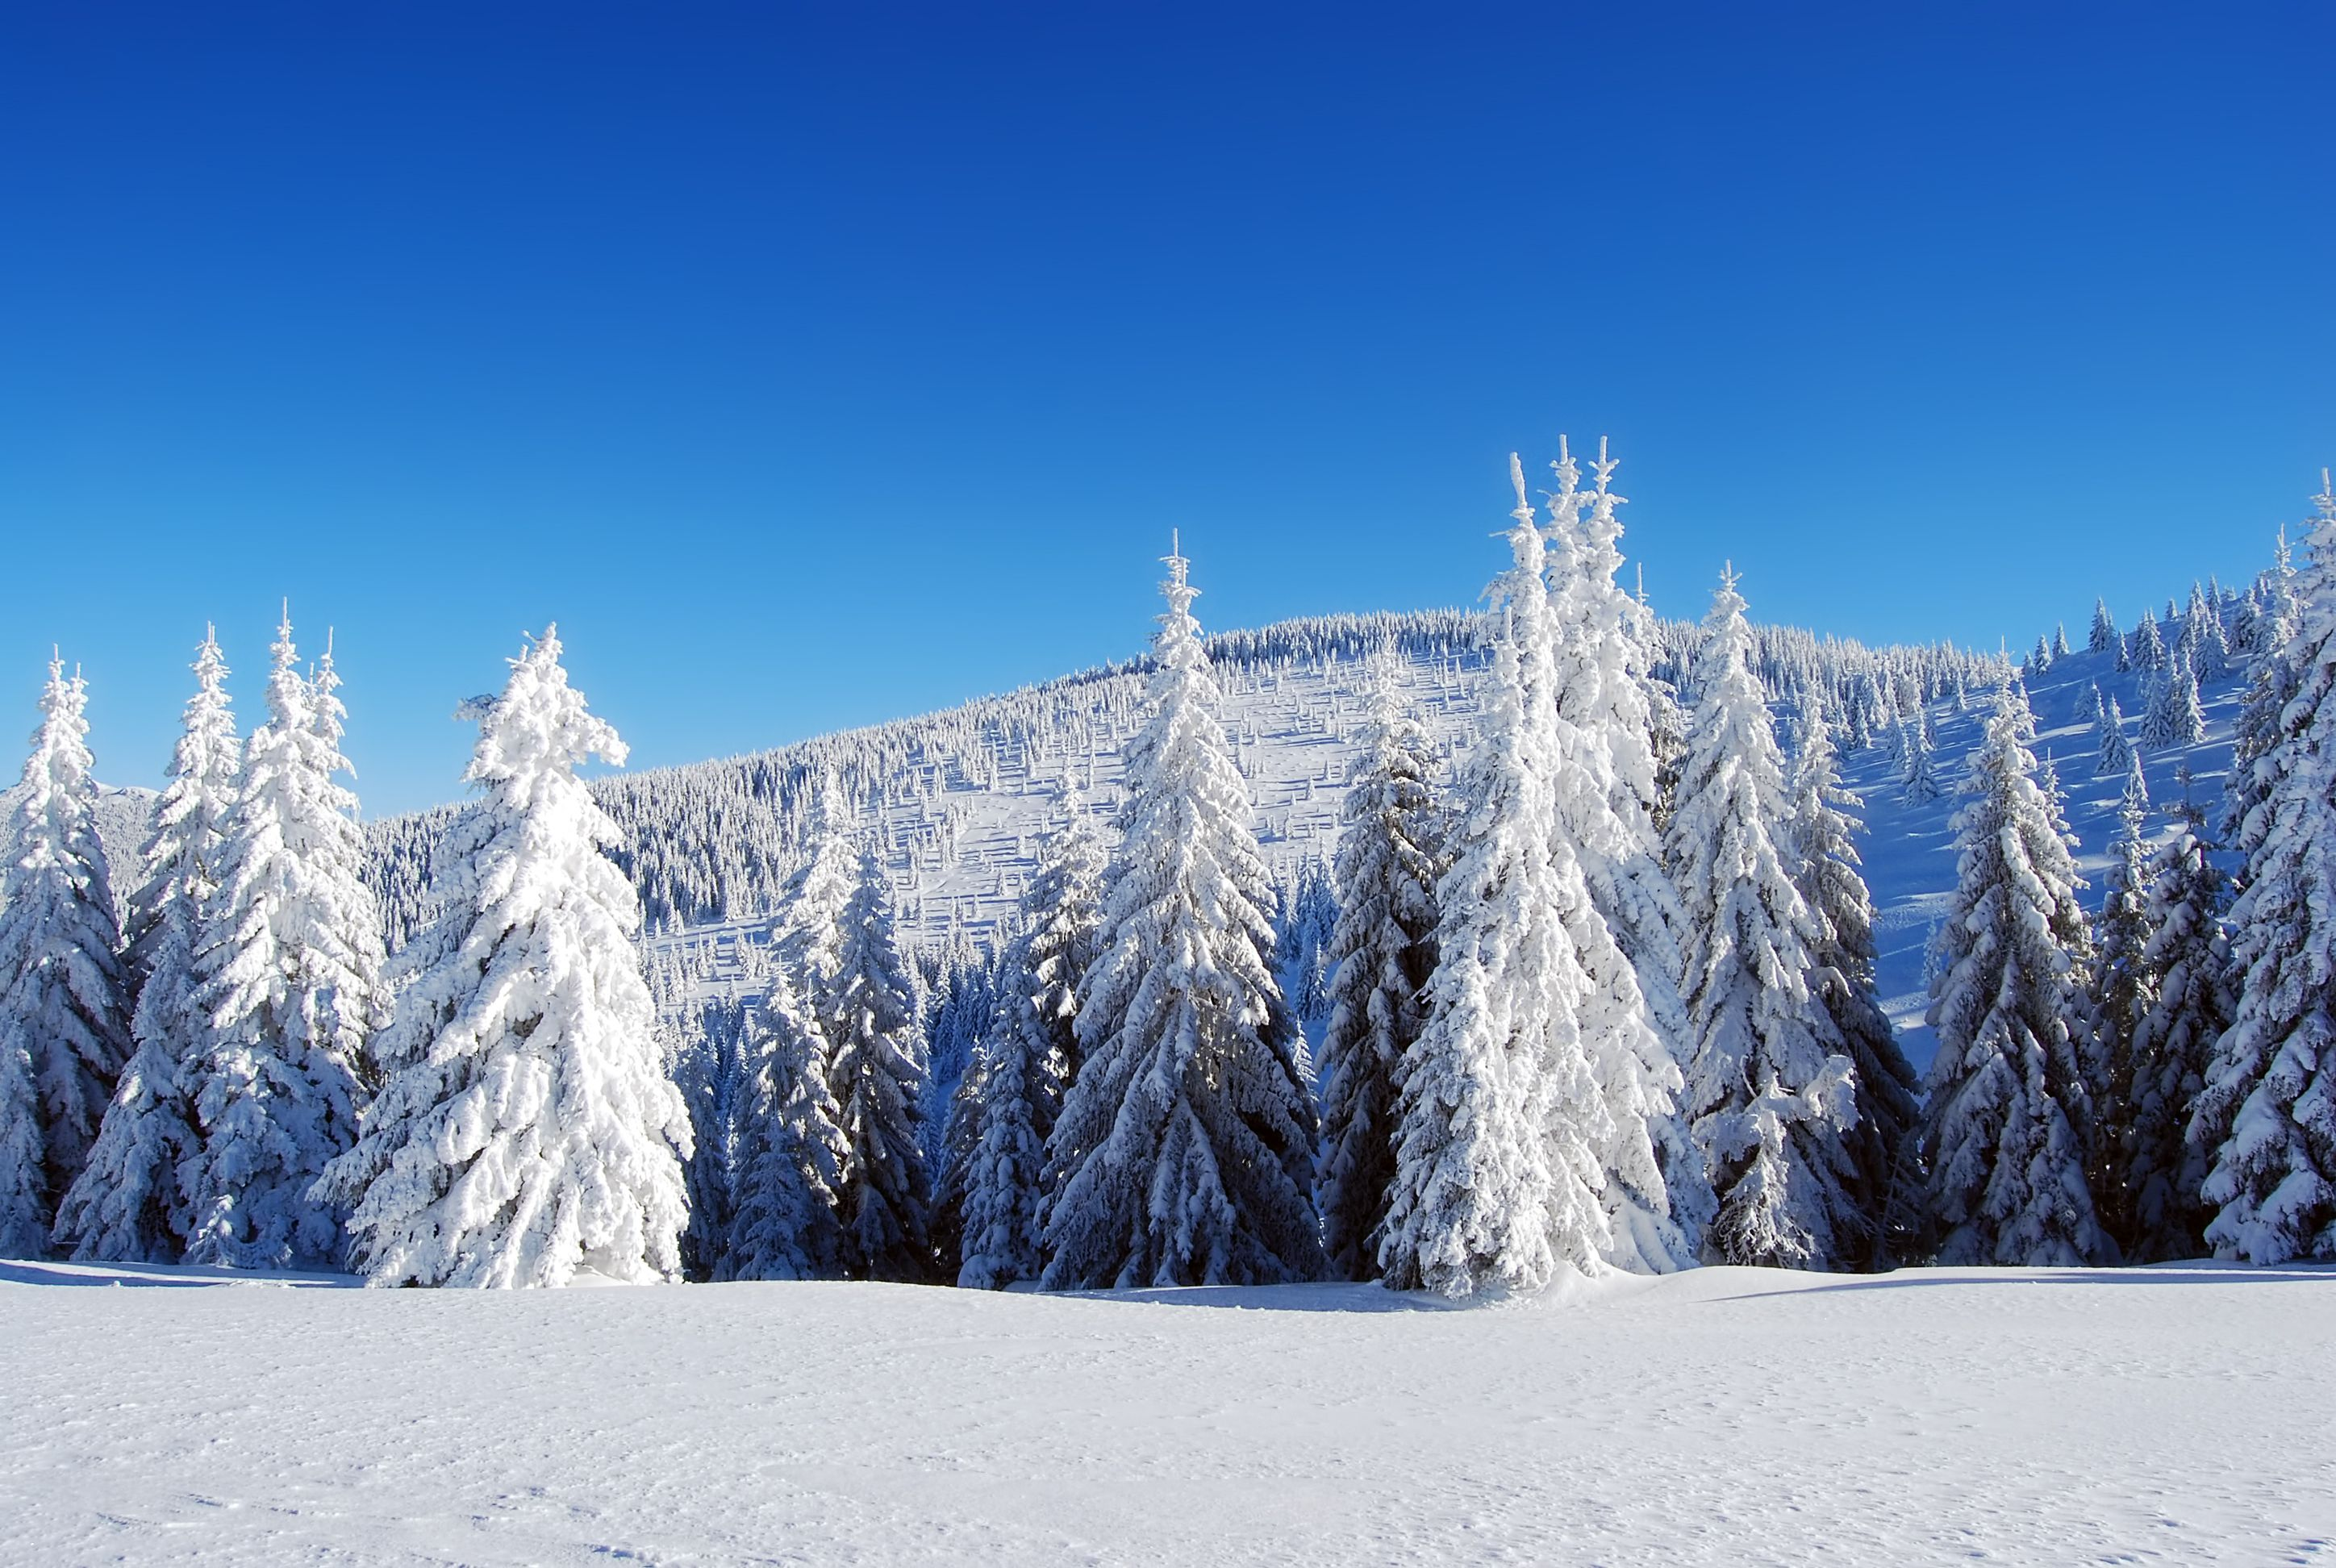 Fir Forest Freeze Hill Nature Outdoor Pine Pines Snow Snowy Tree Winter Landscape Mountain Background Bea Winter Landscape Snowy Mountains Snowy